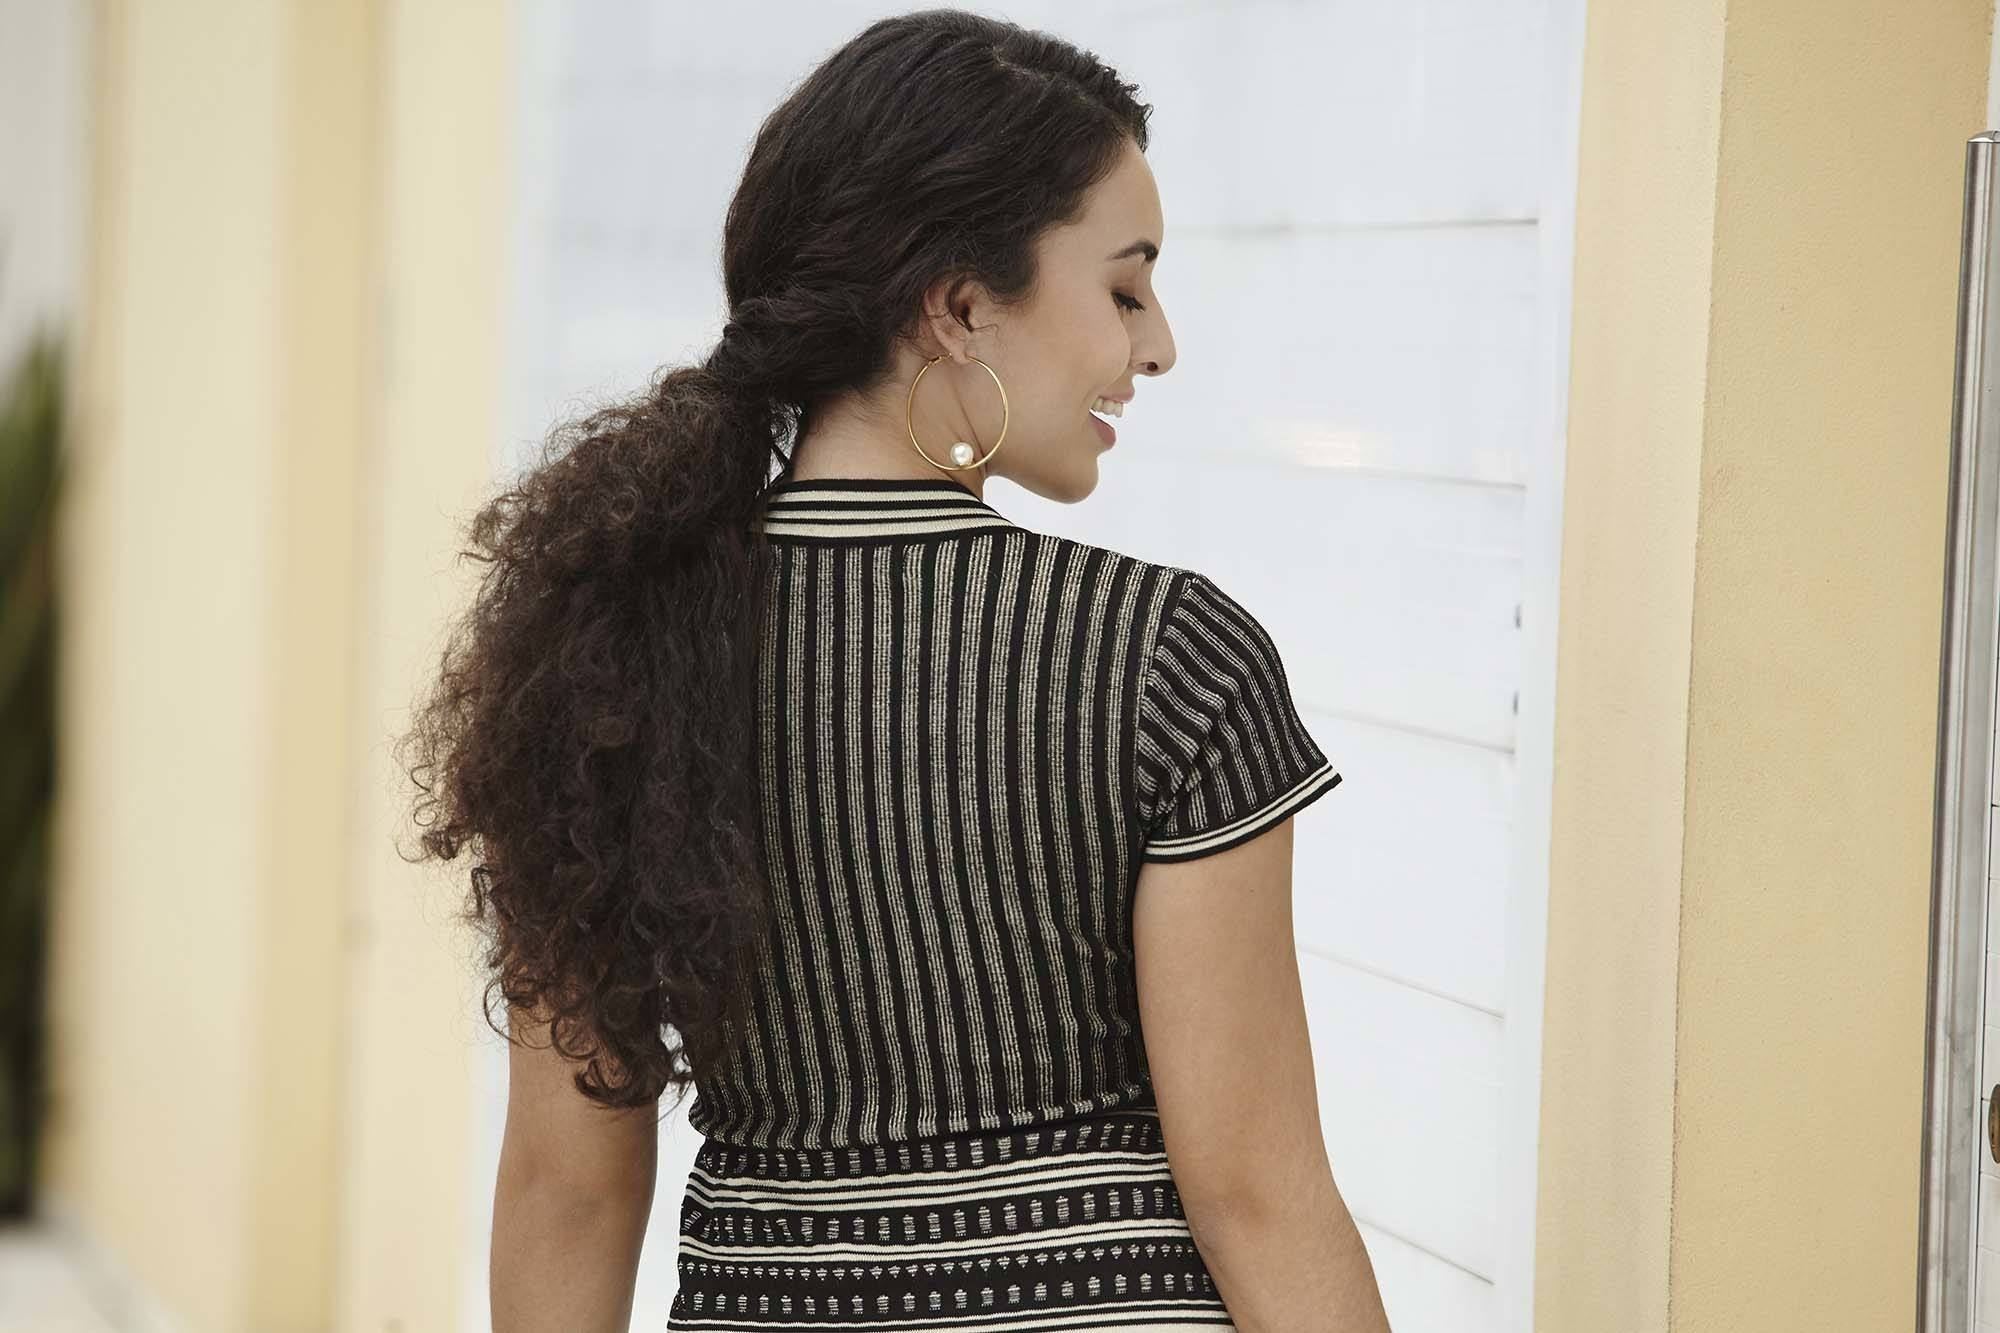 Curly wedding hair: Backshot of model with long curly wedding hair styled into low ponytail